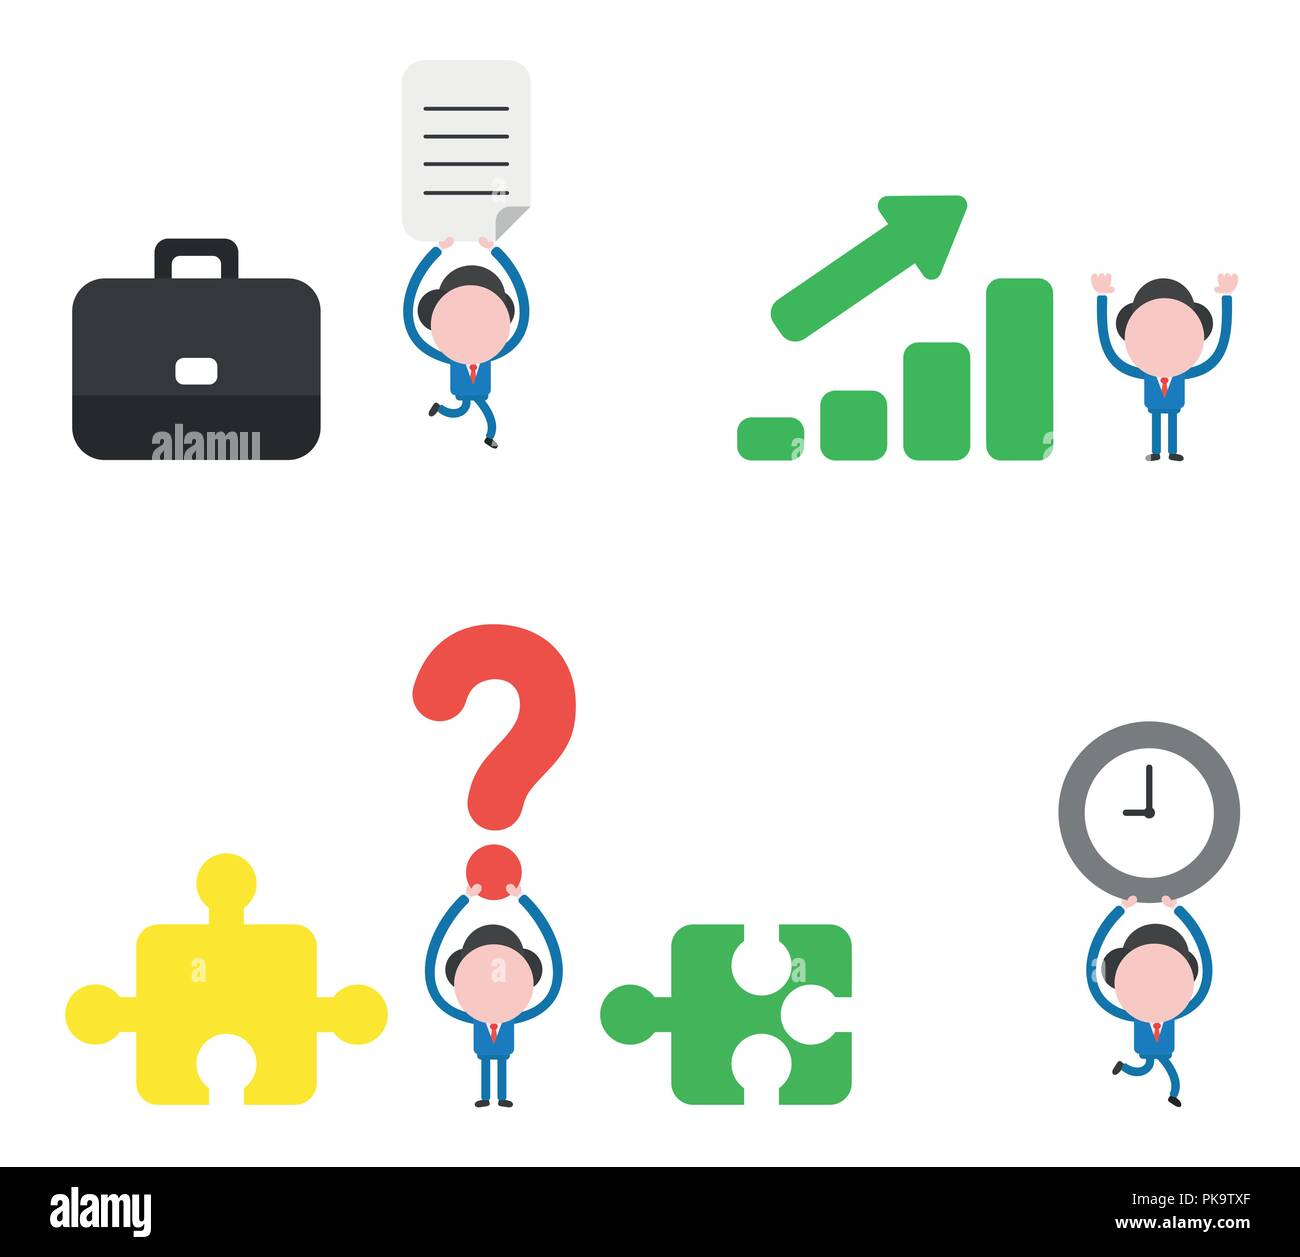 Vector illustration set of businessman mascot character with briefcase and carrying written paper, with sales bar garph moving up, holding up question - Stock Image